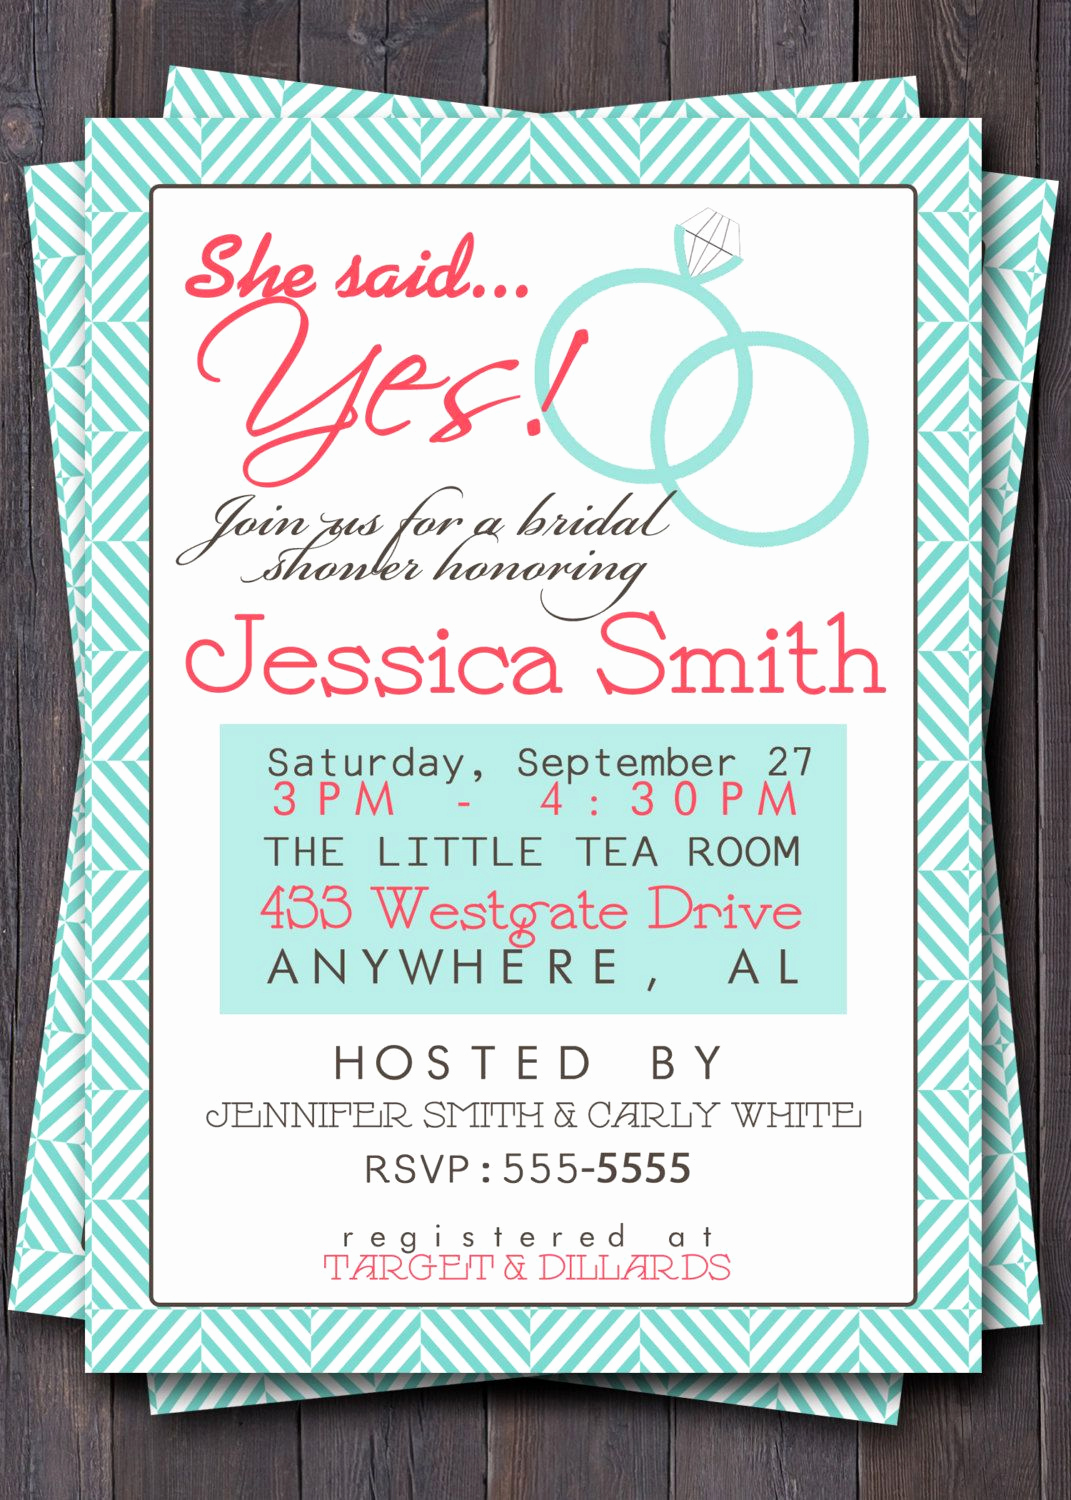 Birthday Brunch Invitation Wording Elegant Brunch Weddings